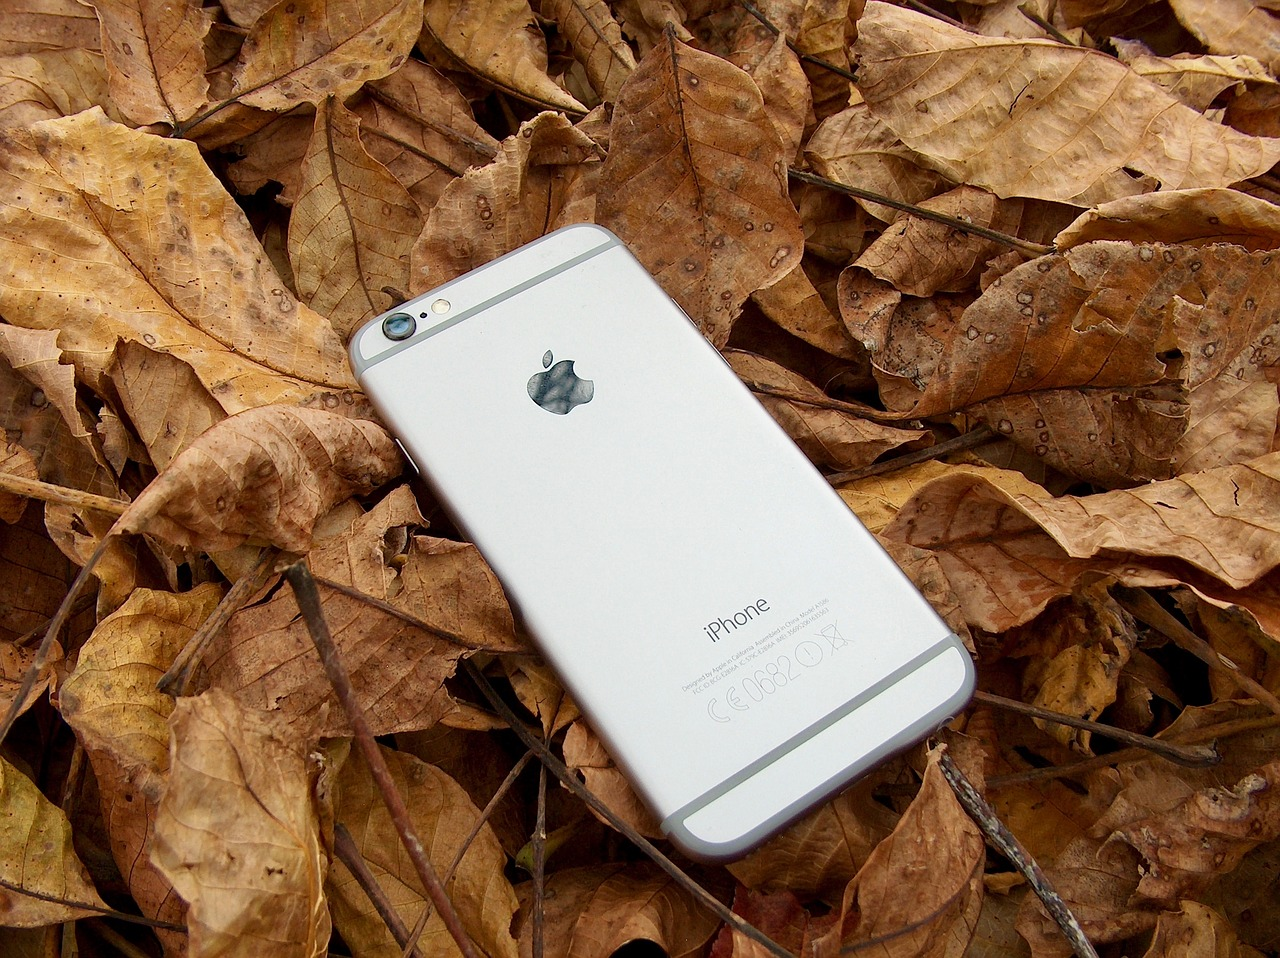 Phone Nestled in Leaves